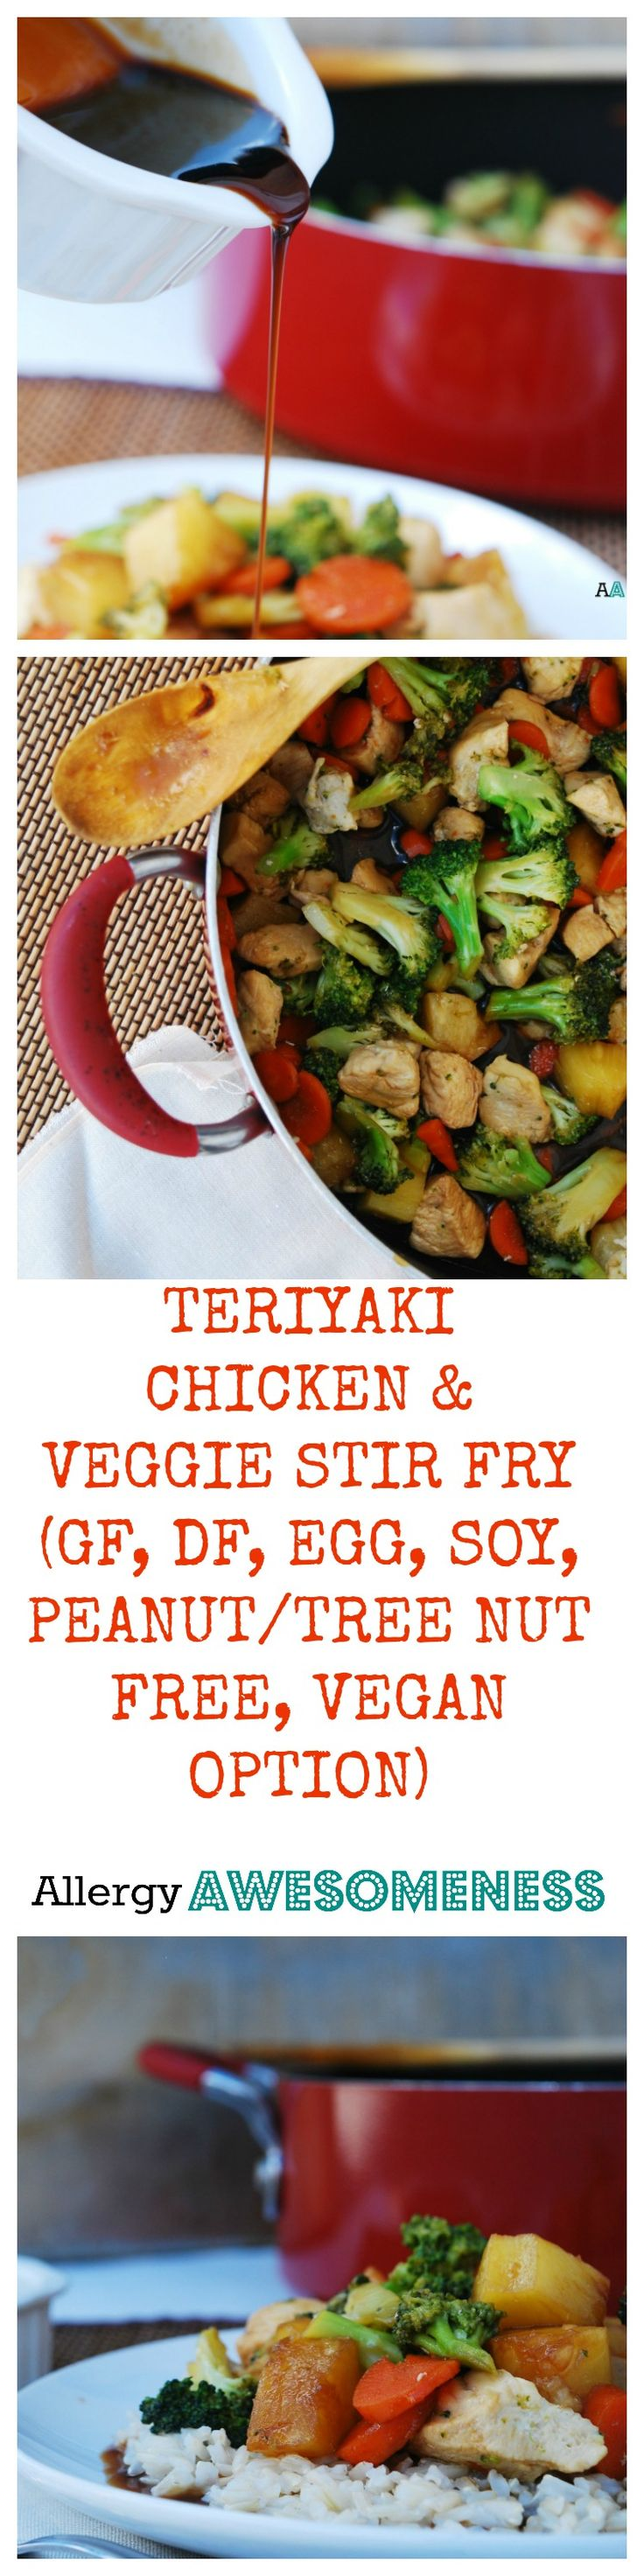 A homemade, gluten-free teriyaki sauce that only needs 7 ingredients and 5 minutes will cover all of your chicken and veggies in a sweet, yet tangy glaze. Serve over brown rice and you've got your protein, veggies, fruit, and carbs all in one convenient and tasty dish. By Allergy Awesomeness